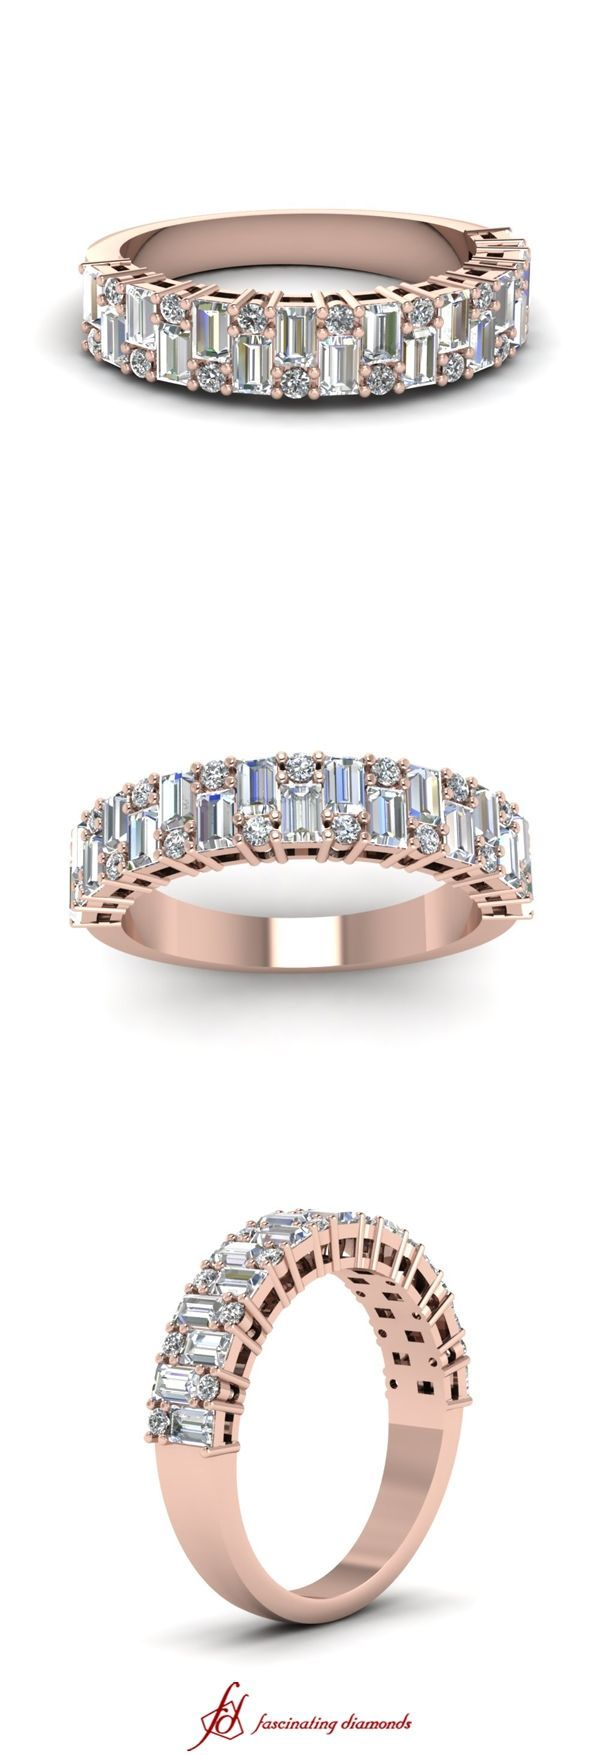 White Diamond Wedding Band In 14K Rose Gold marketplacejewellers.com